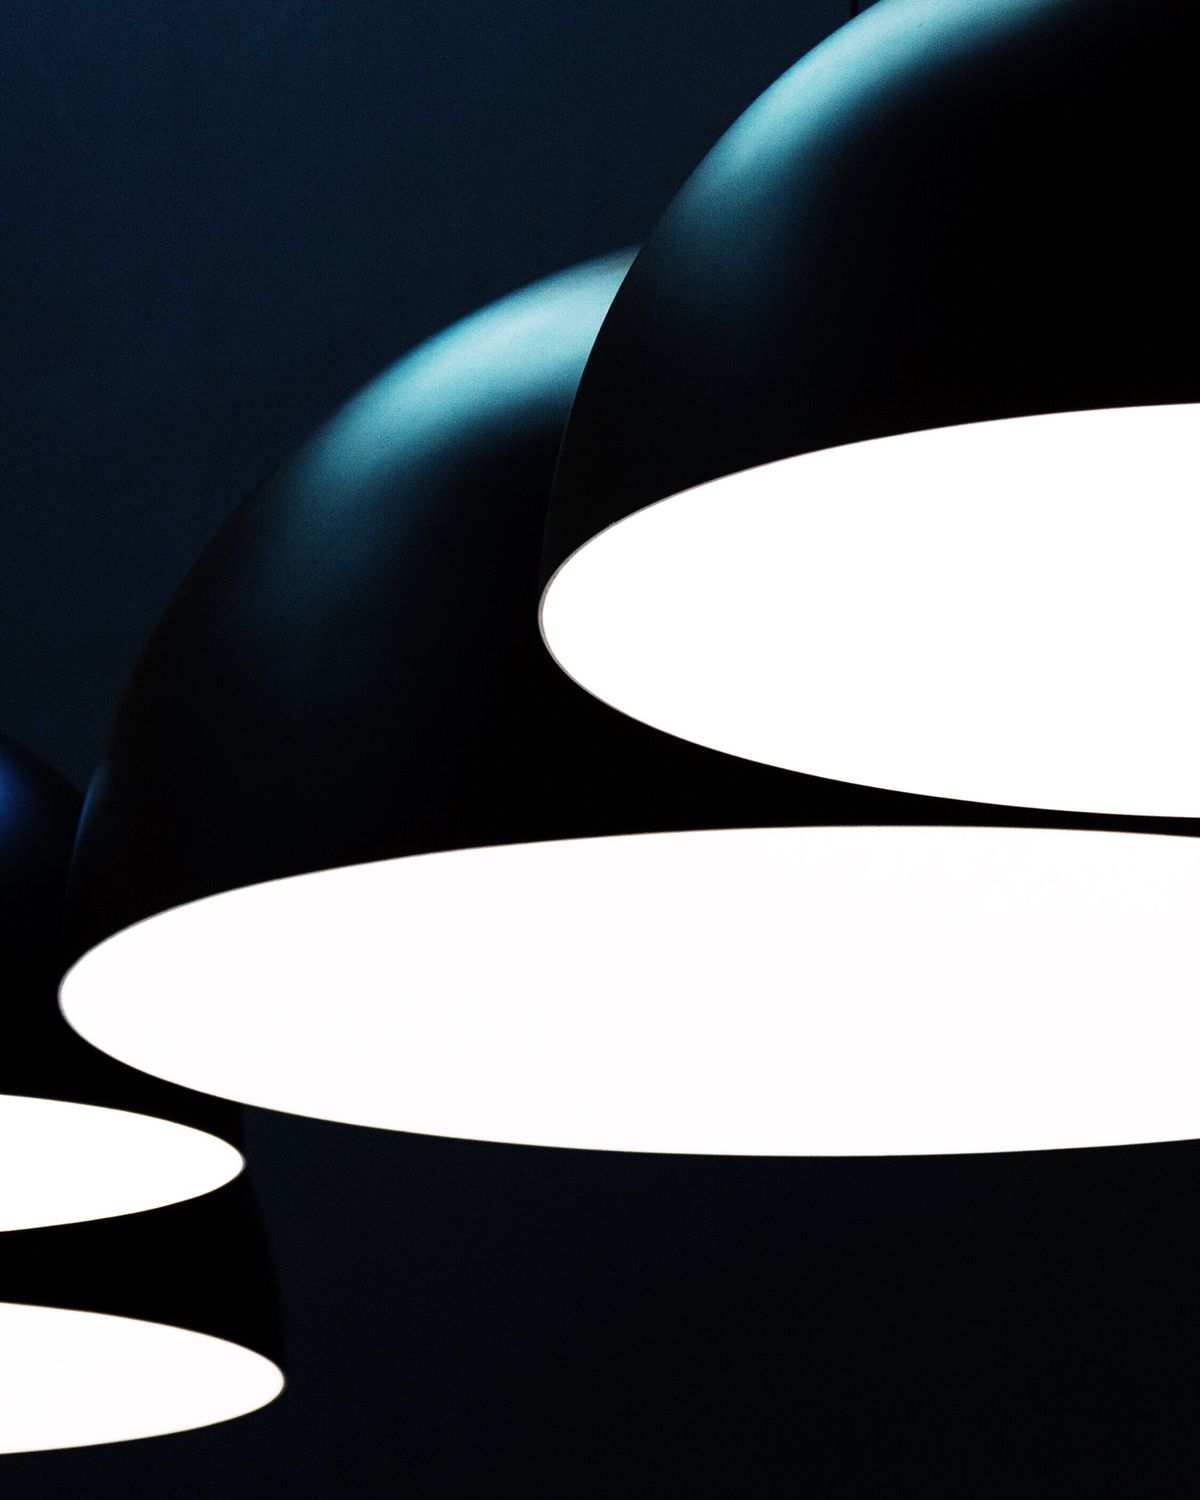 close-up no people illuminated Black Background indoors Low angle view Modern technology